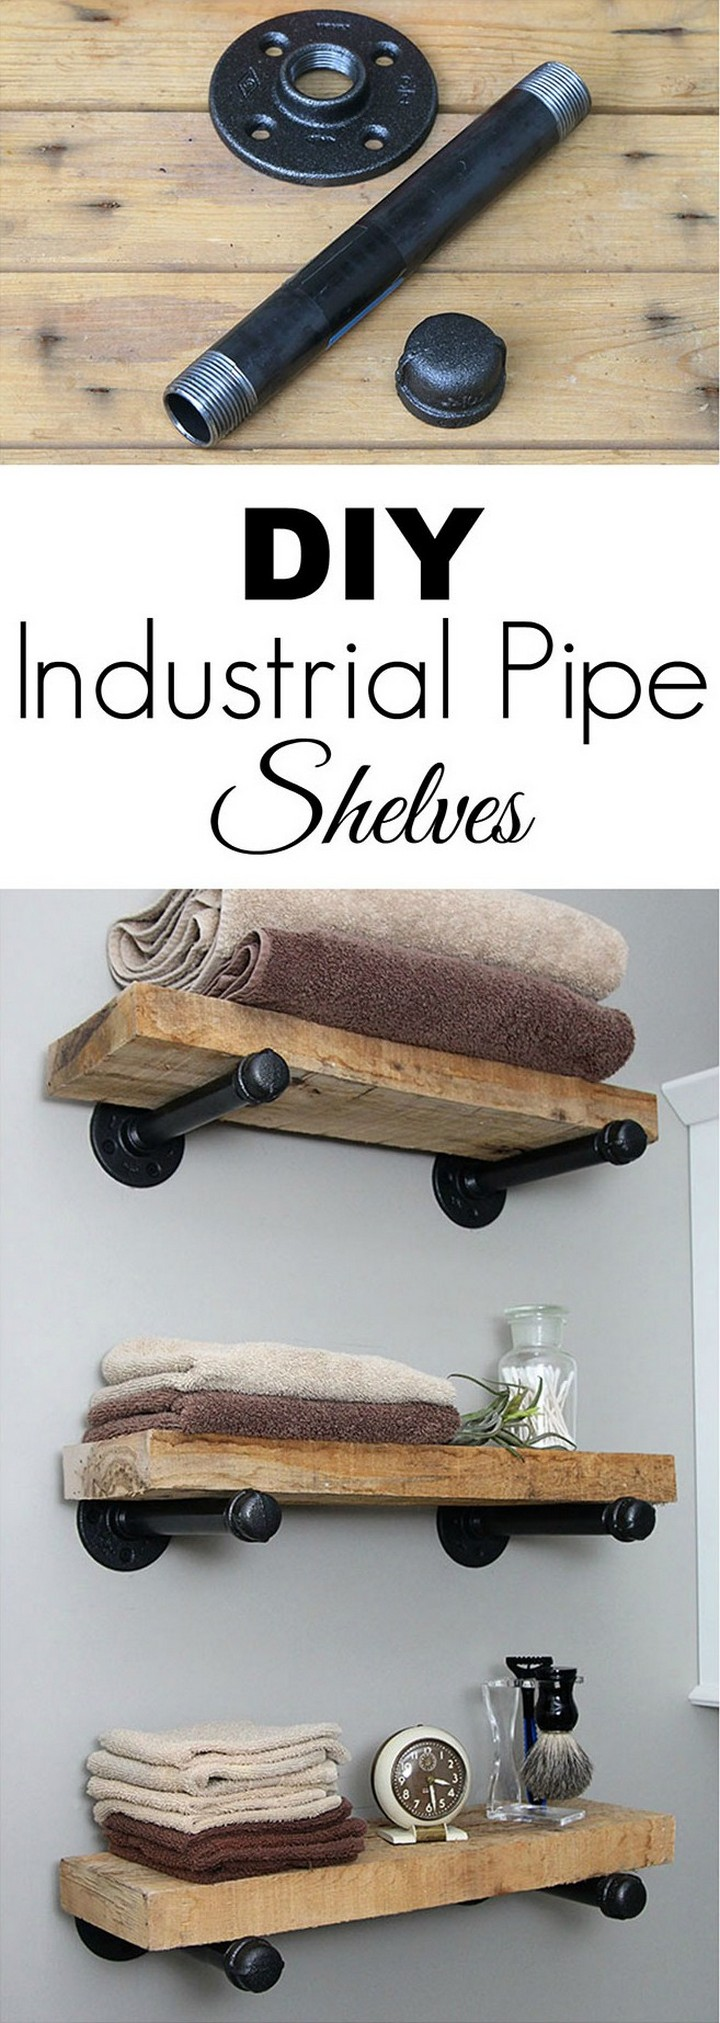 DIY Industrial Pipe